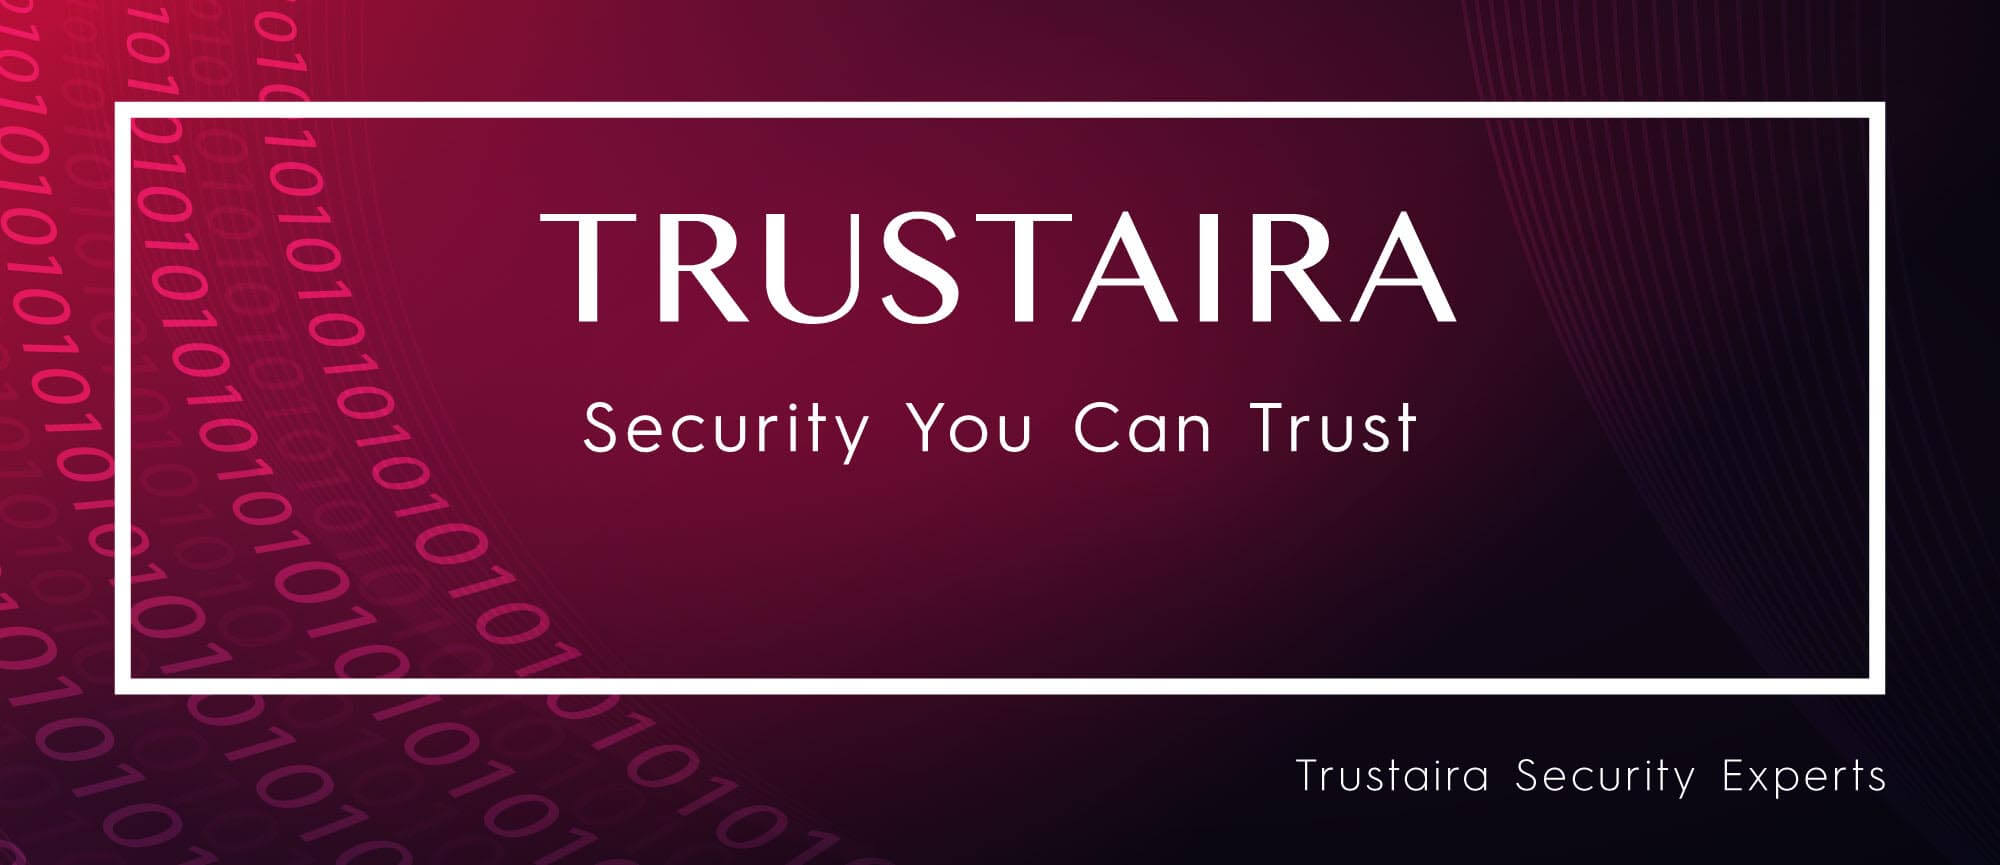 Trustaira Limited- End-to-End Cyber Security Solutions and Service Provider in Bangladesh